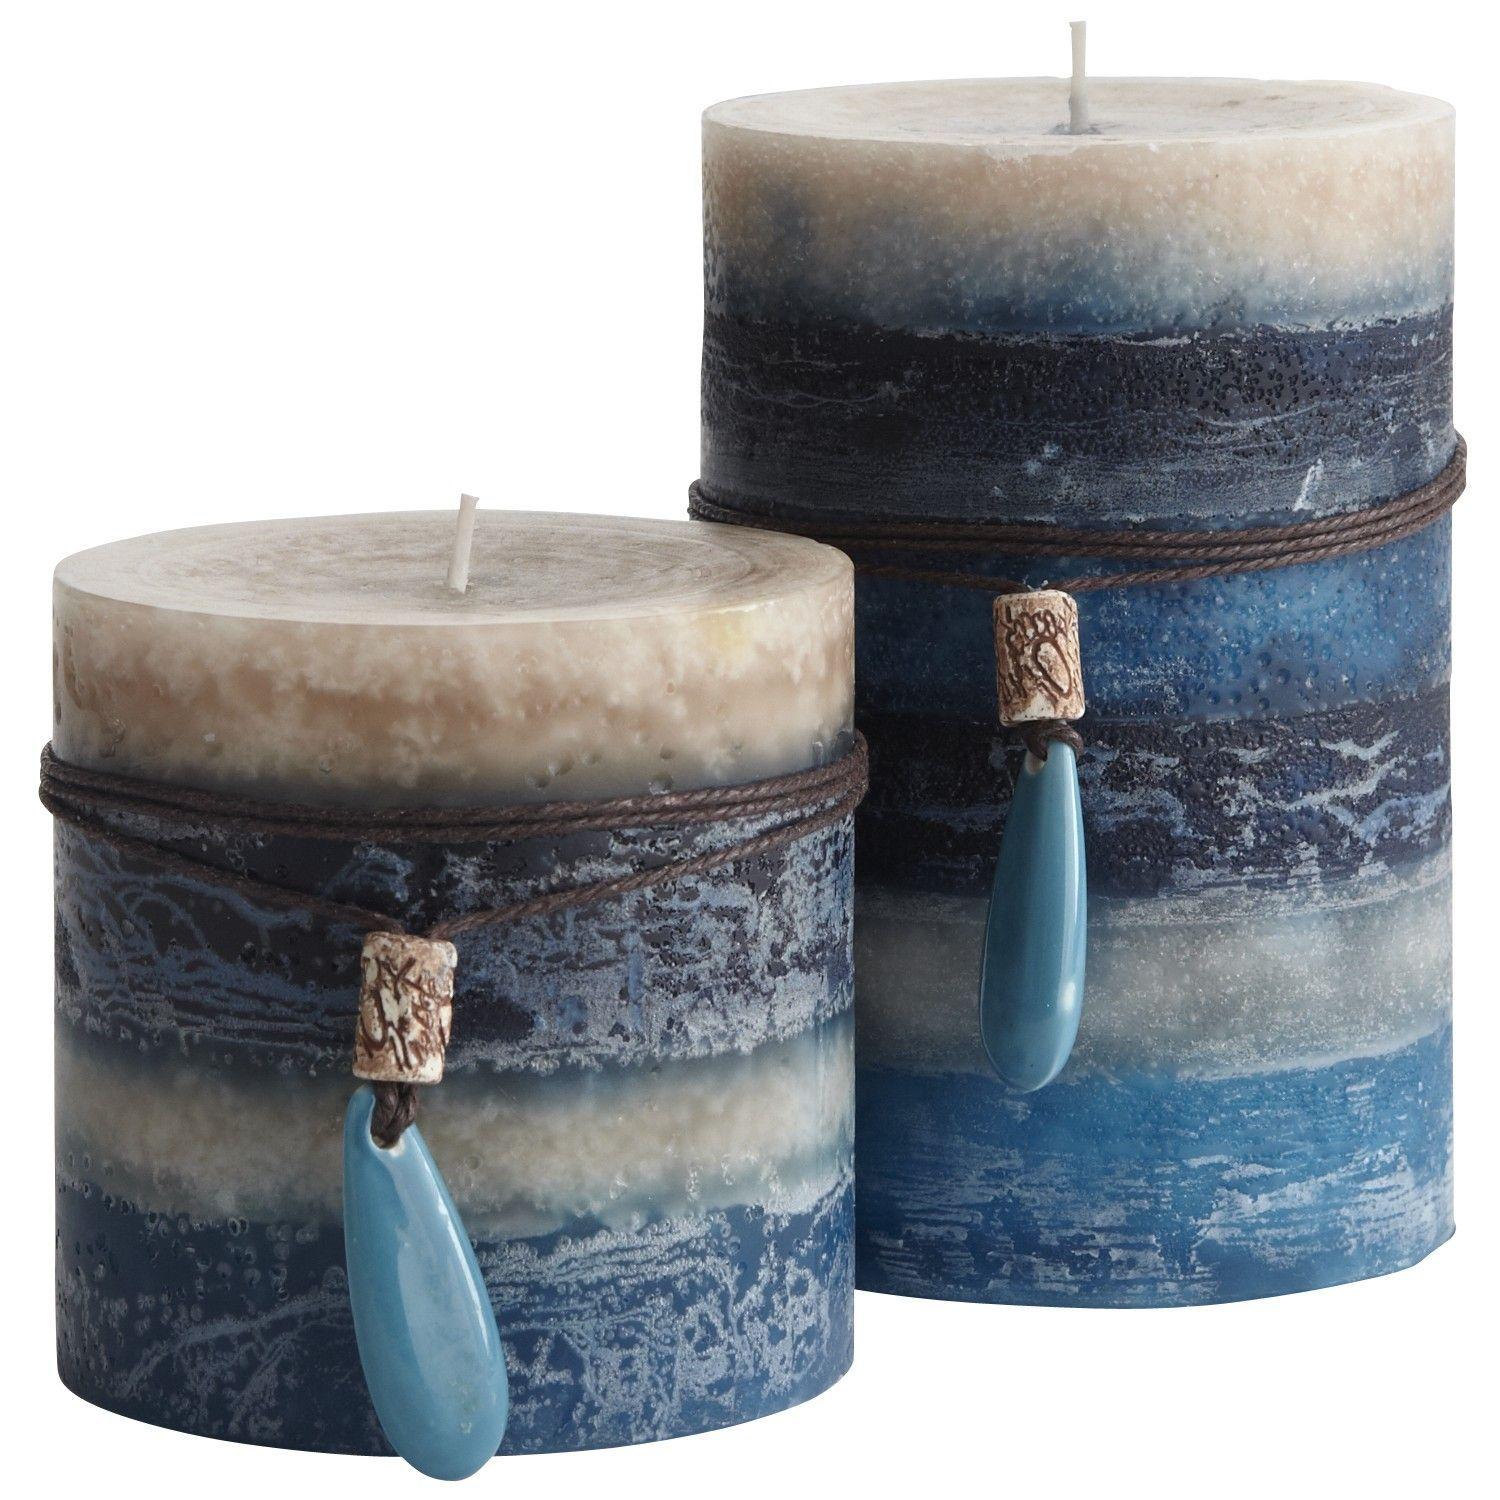 Pillars For Home Decor Oceans Layered Pillars Candles If You Like This Then Check Out The